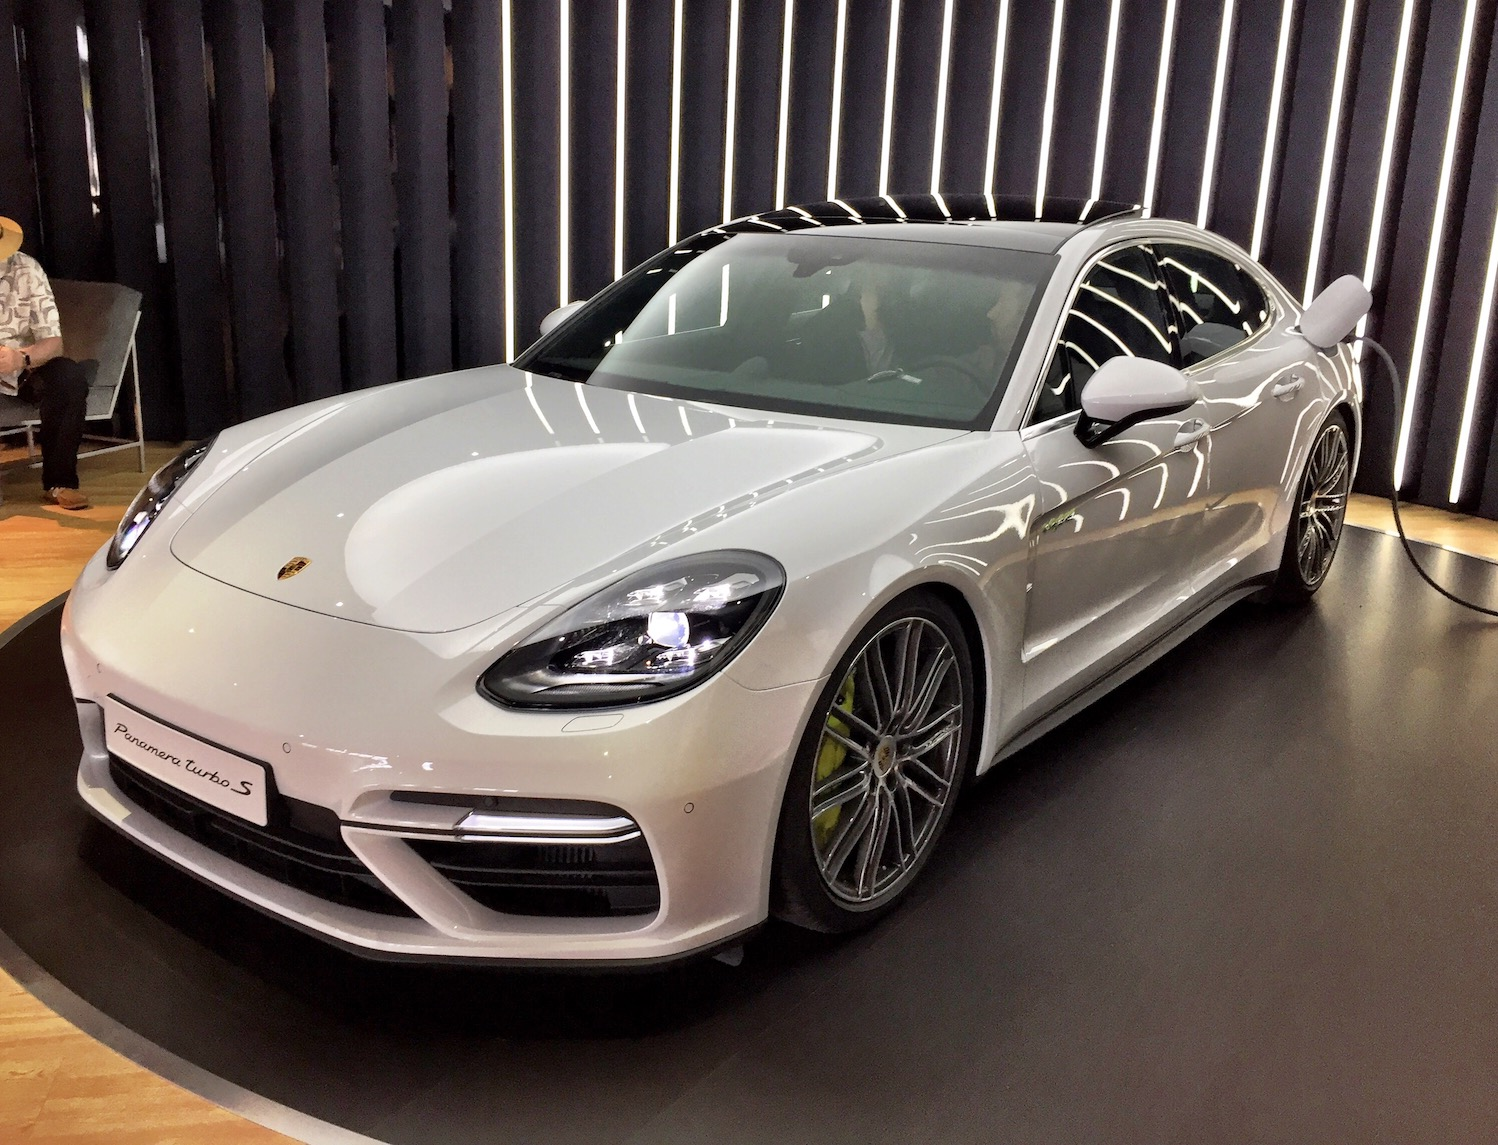 100 gray porsche panamera 2014 porsche panamera s e hybrid weissach used porsche panamera. Black Bedroom Furniture Sets. Home Design Ideas